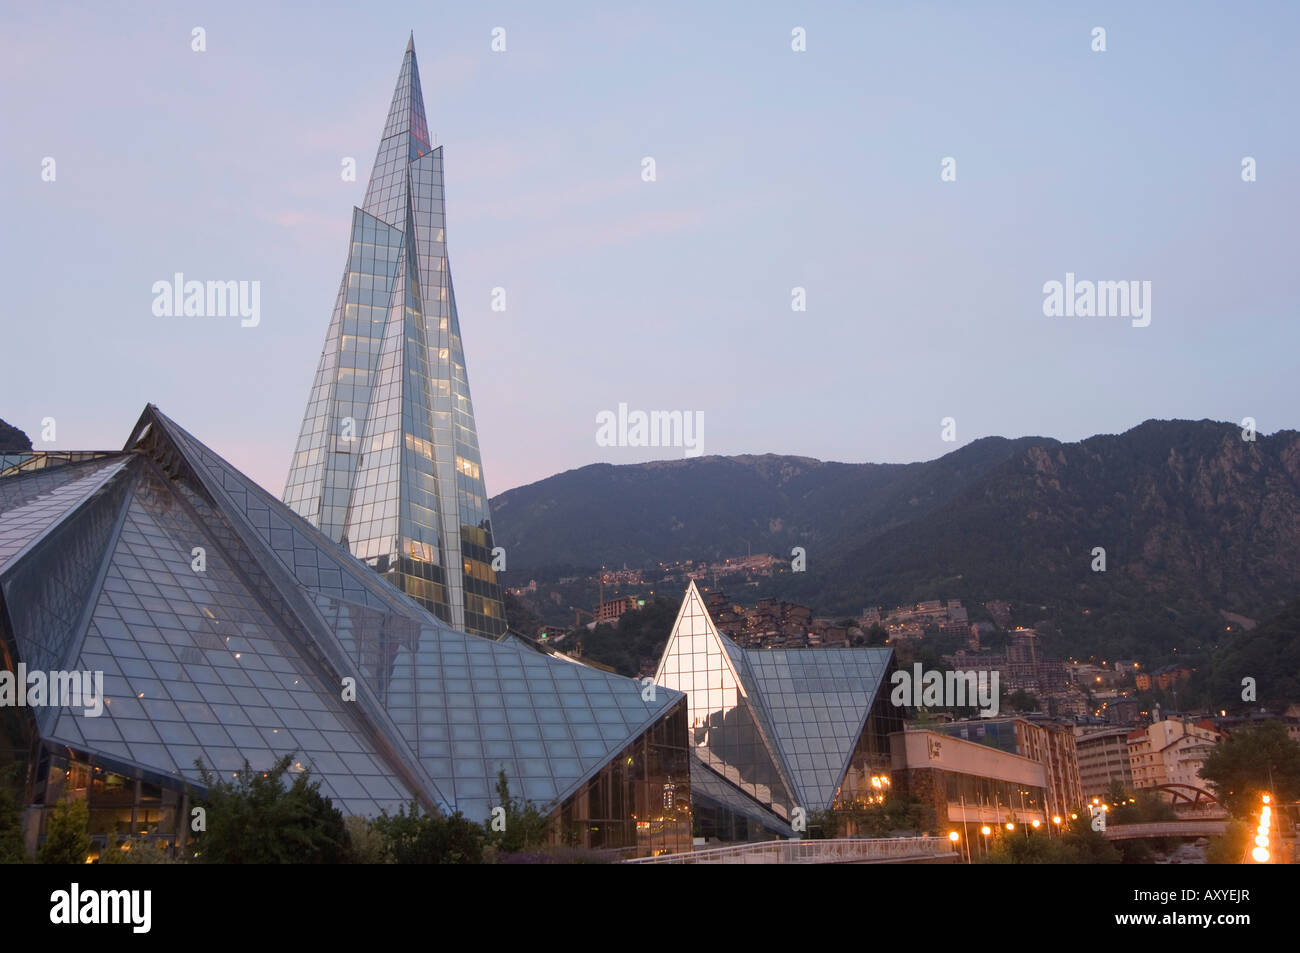 Caldea Hot Spring Complex lit up in the evening, Andorra La Vella, Andorra, Europe - Stock Image